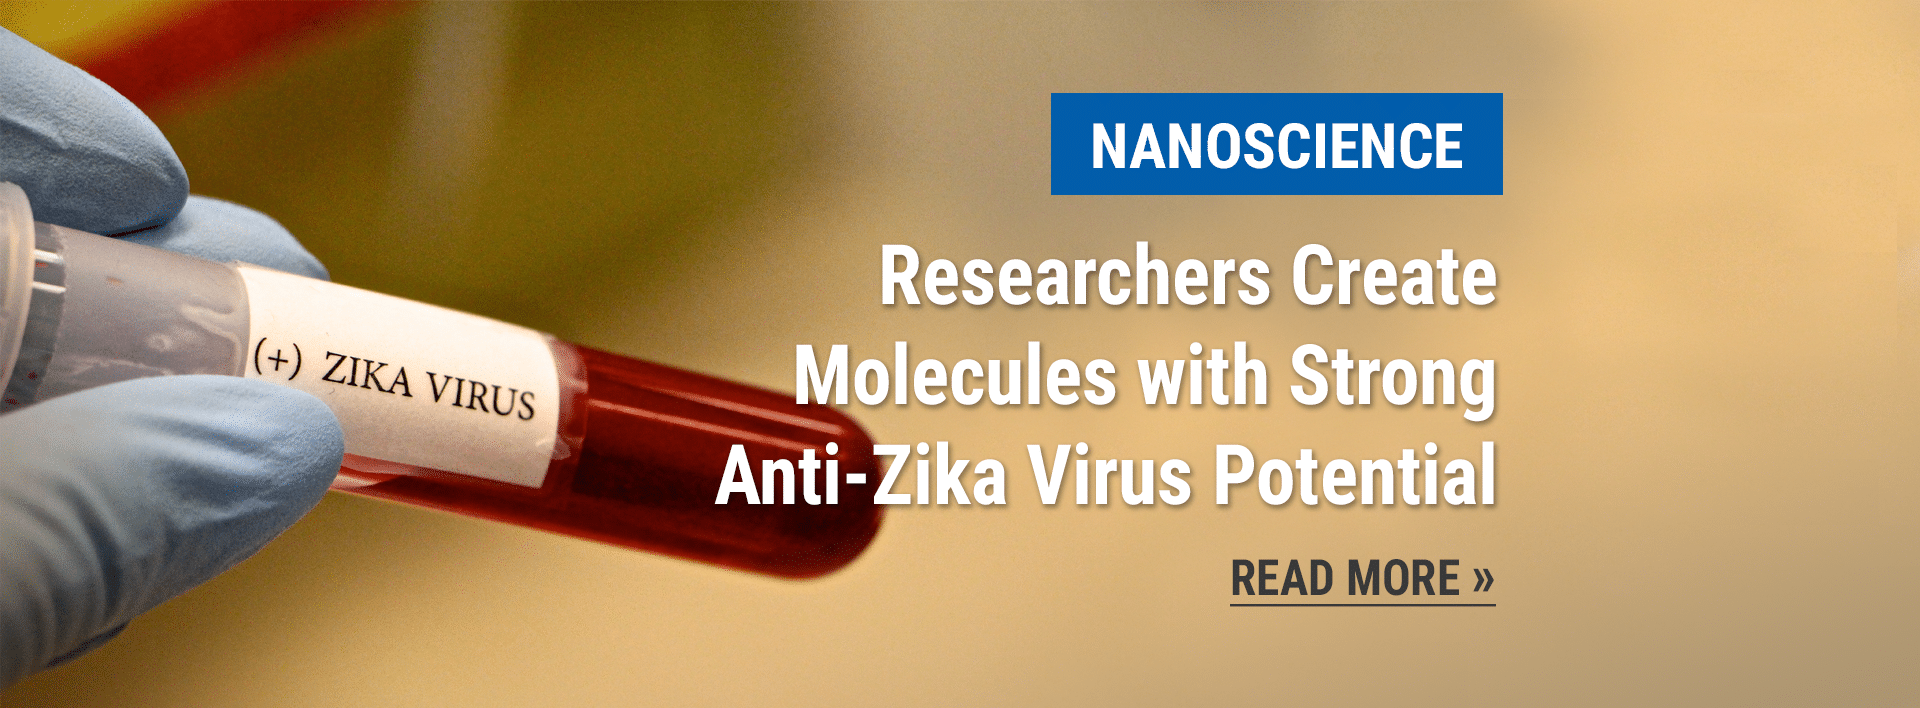 Nanoscience news: Researchers Create Molecules with Strong Anti-Zika Virus Potential